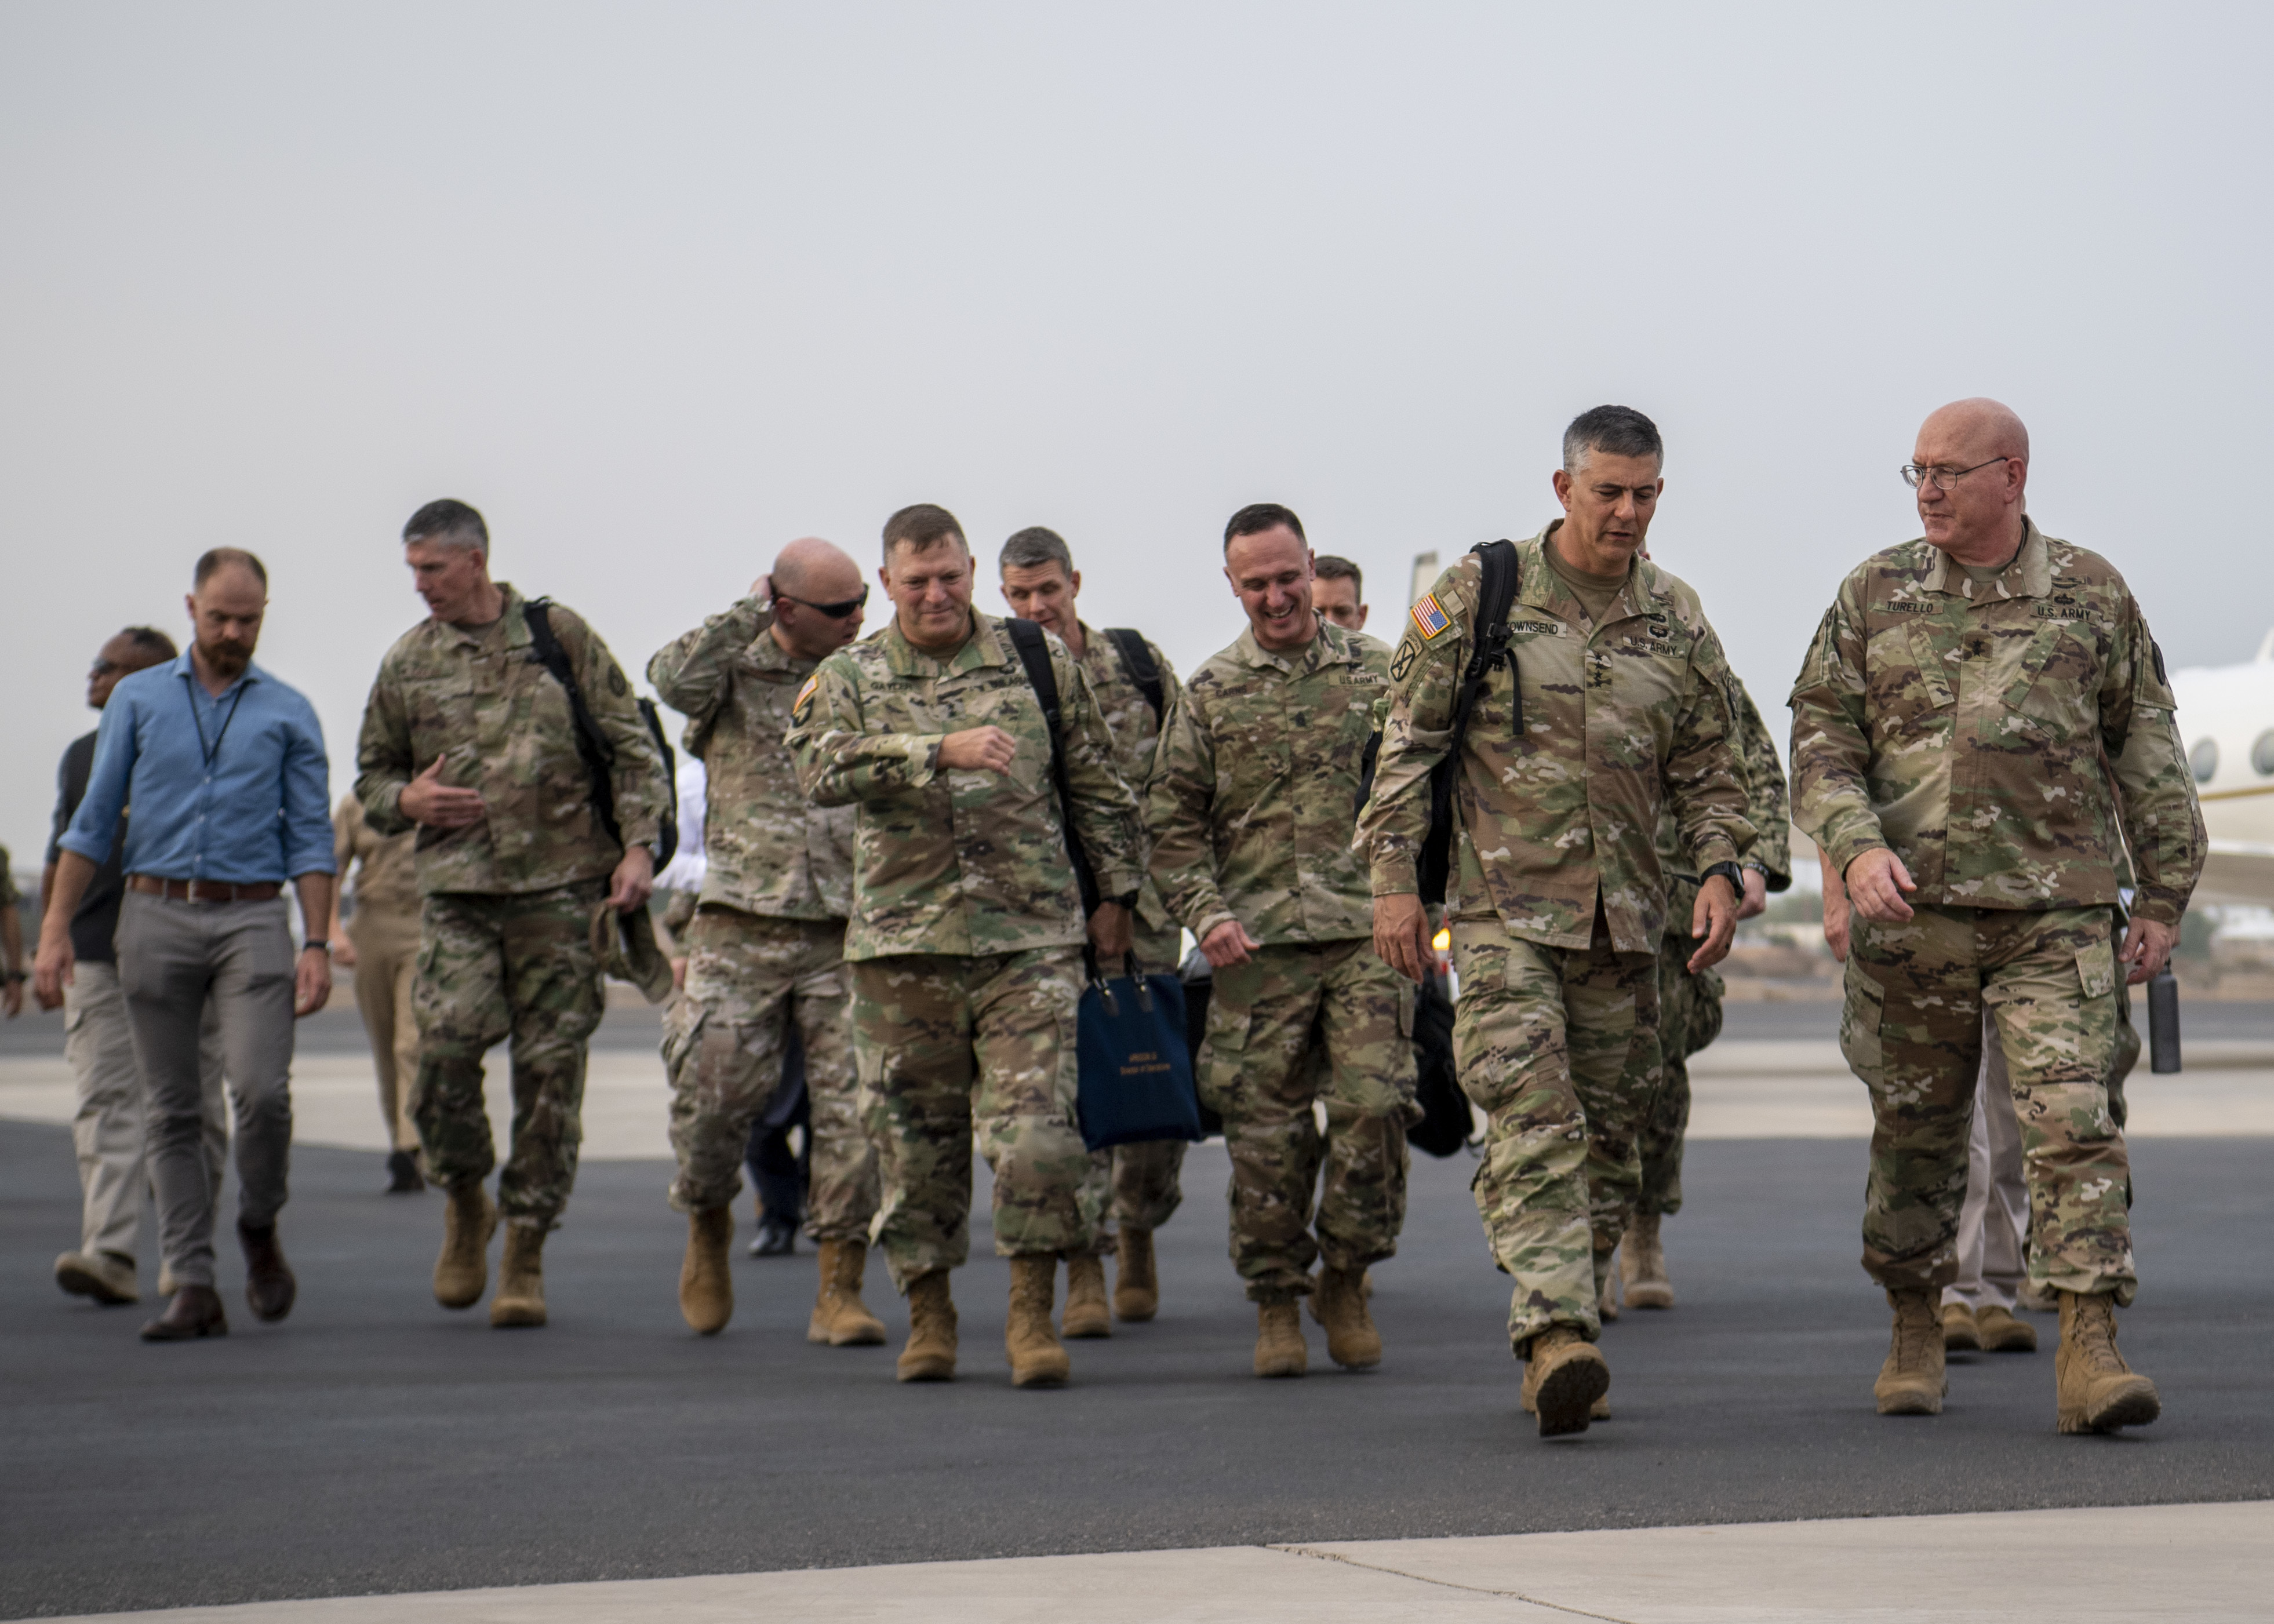 U.S. Army Gen. Stephen J. Townsend, commander, U.S. Africa Command (AFRICOM), left, is escorted while touring Camp Lemonnier by U.S. Army Maj. Gen. Michael Turello, commanding general, Combined Joint Task Force-Horn of Africa (CJTF-HOA), at Camp Lemonnier, Djibouti, August 5, 2019. As commander of AFRICOM Townsend is in charge of military relations with African nations, the African Union and African regional security organizations. Townsend visited Djibouti as part of his familiarization of CJTF-HOA. (U.S. Air Force photo by Staff Sgt. J.D. Strong II)